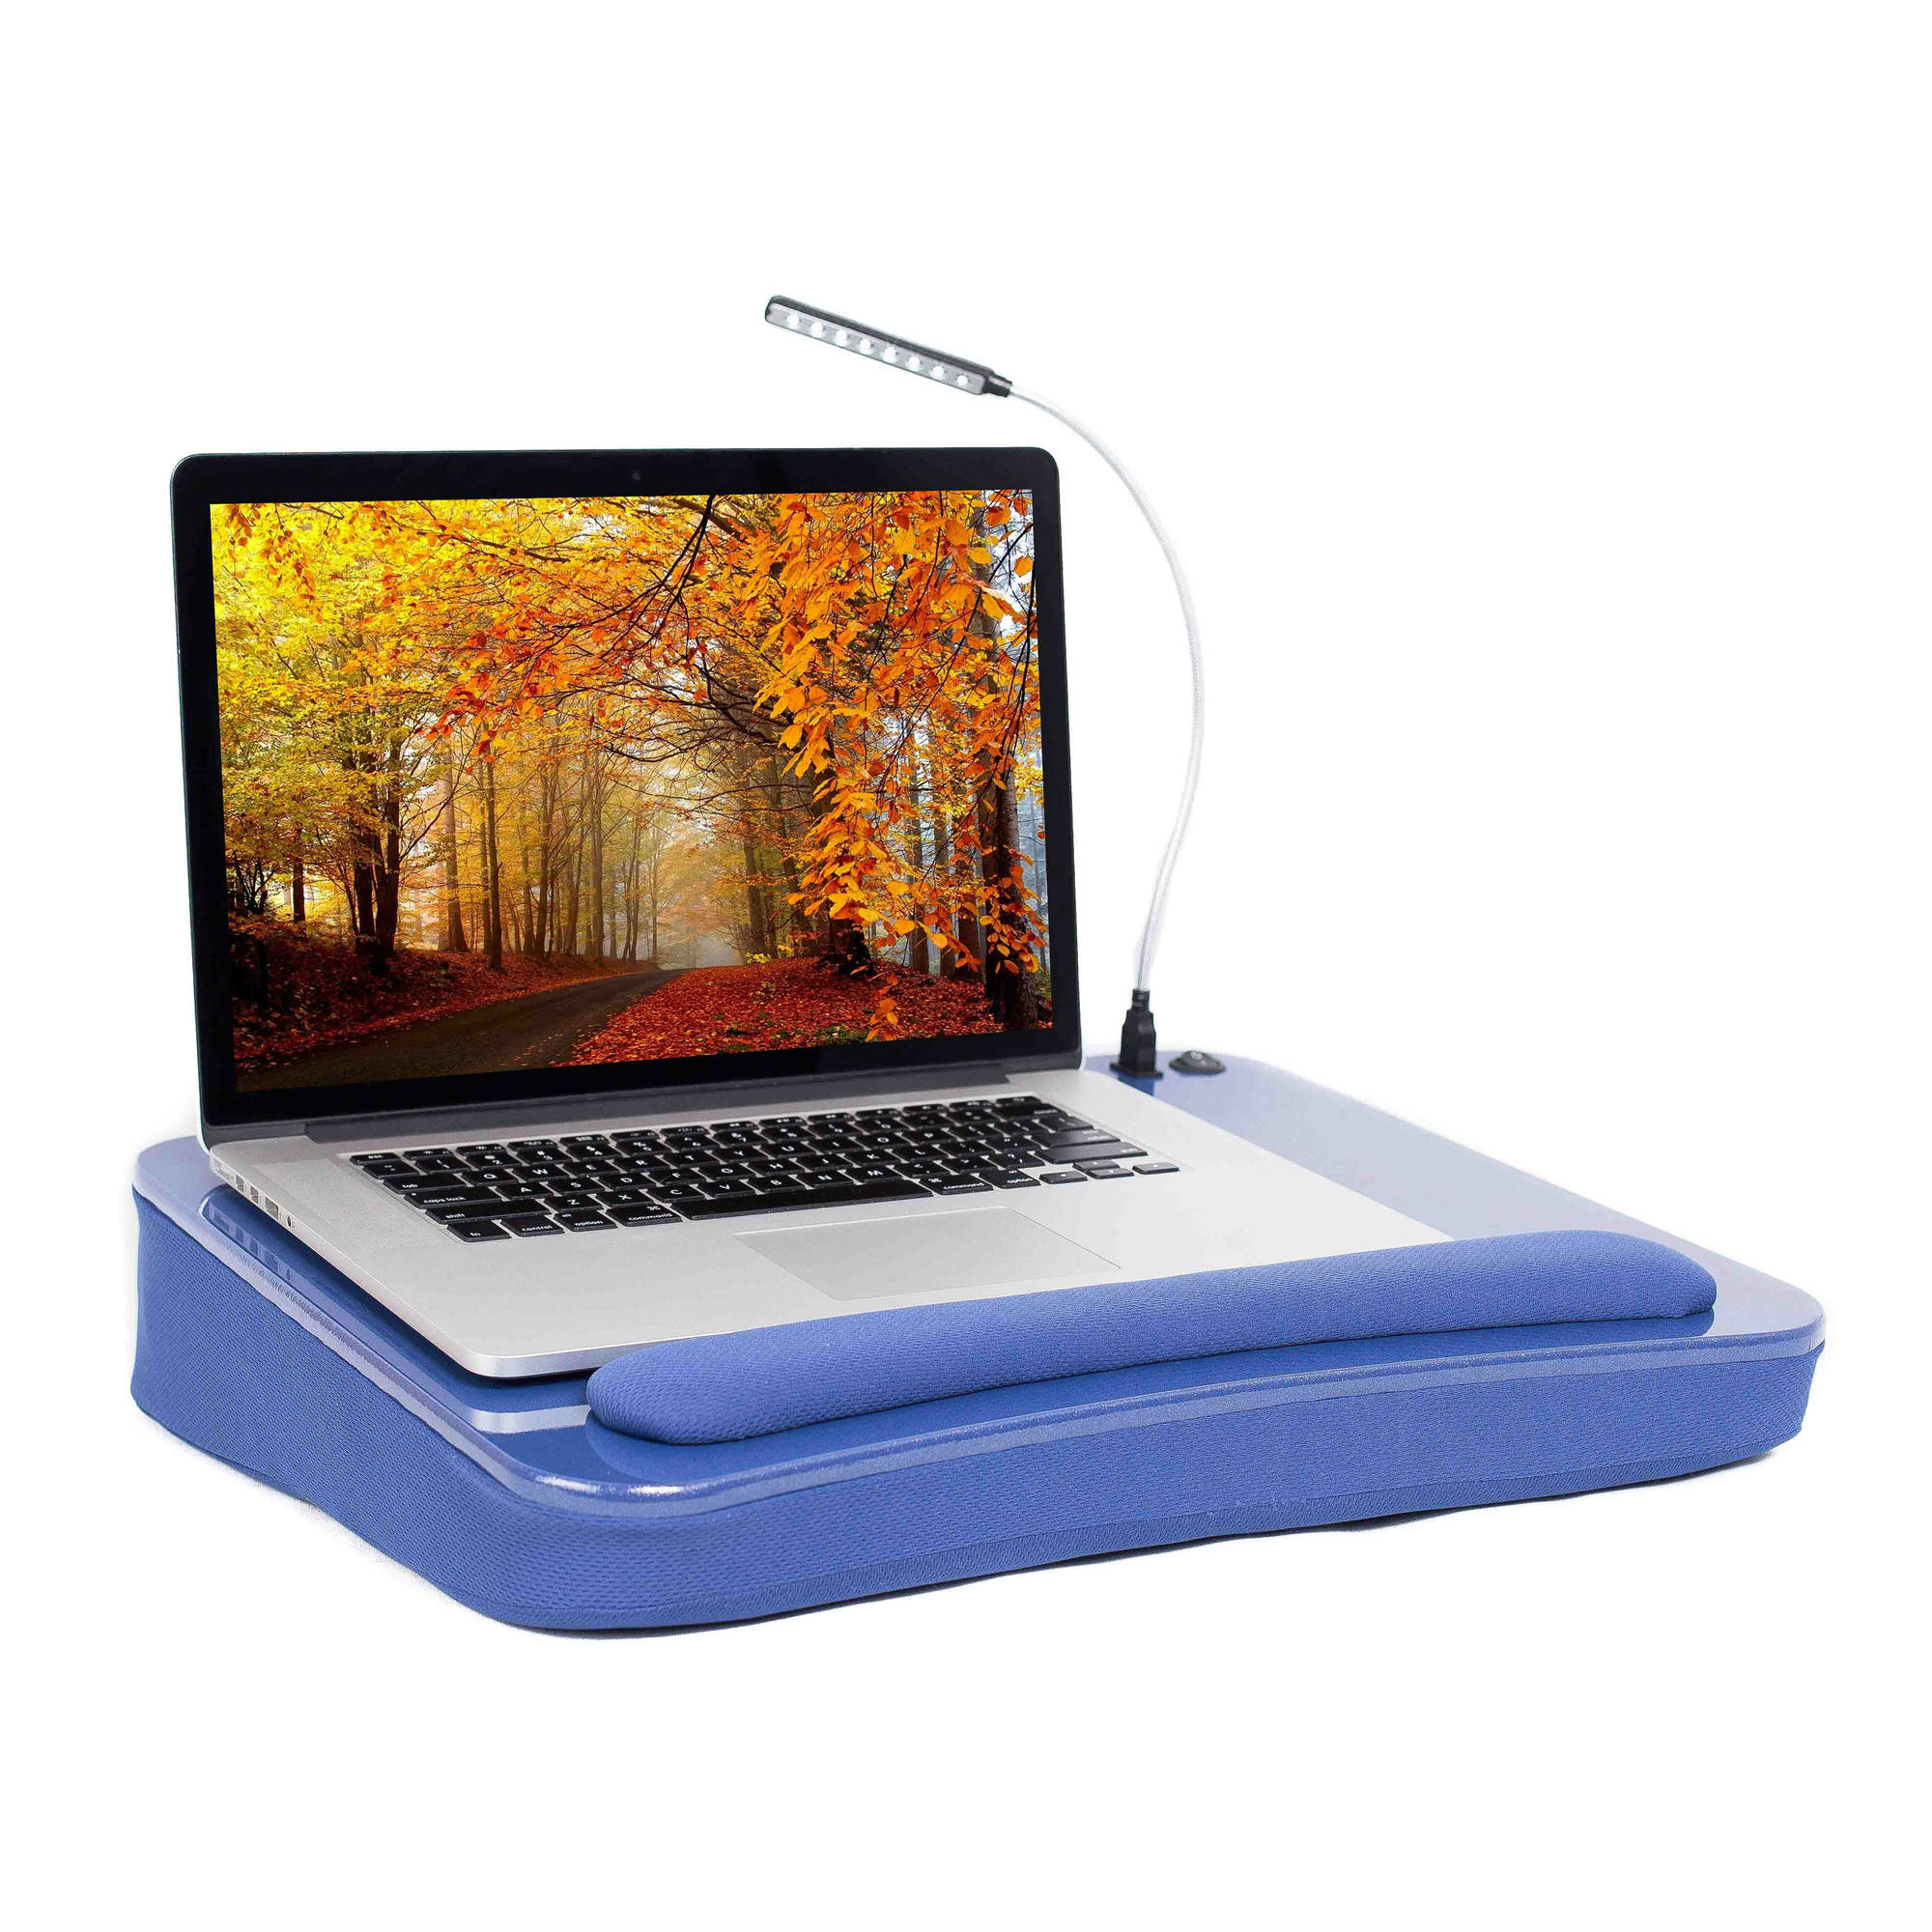 Sofia+Sam Memory Foam Lap Desk with USB Light and Wrist Rest, Blue